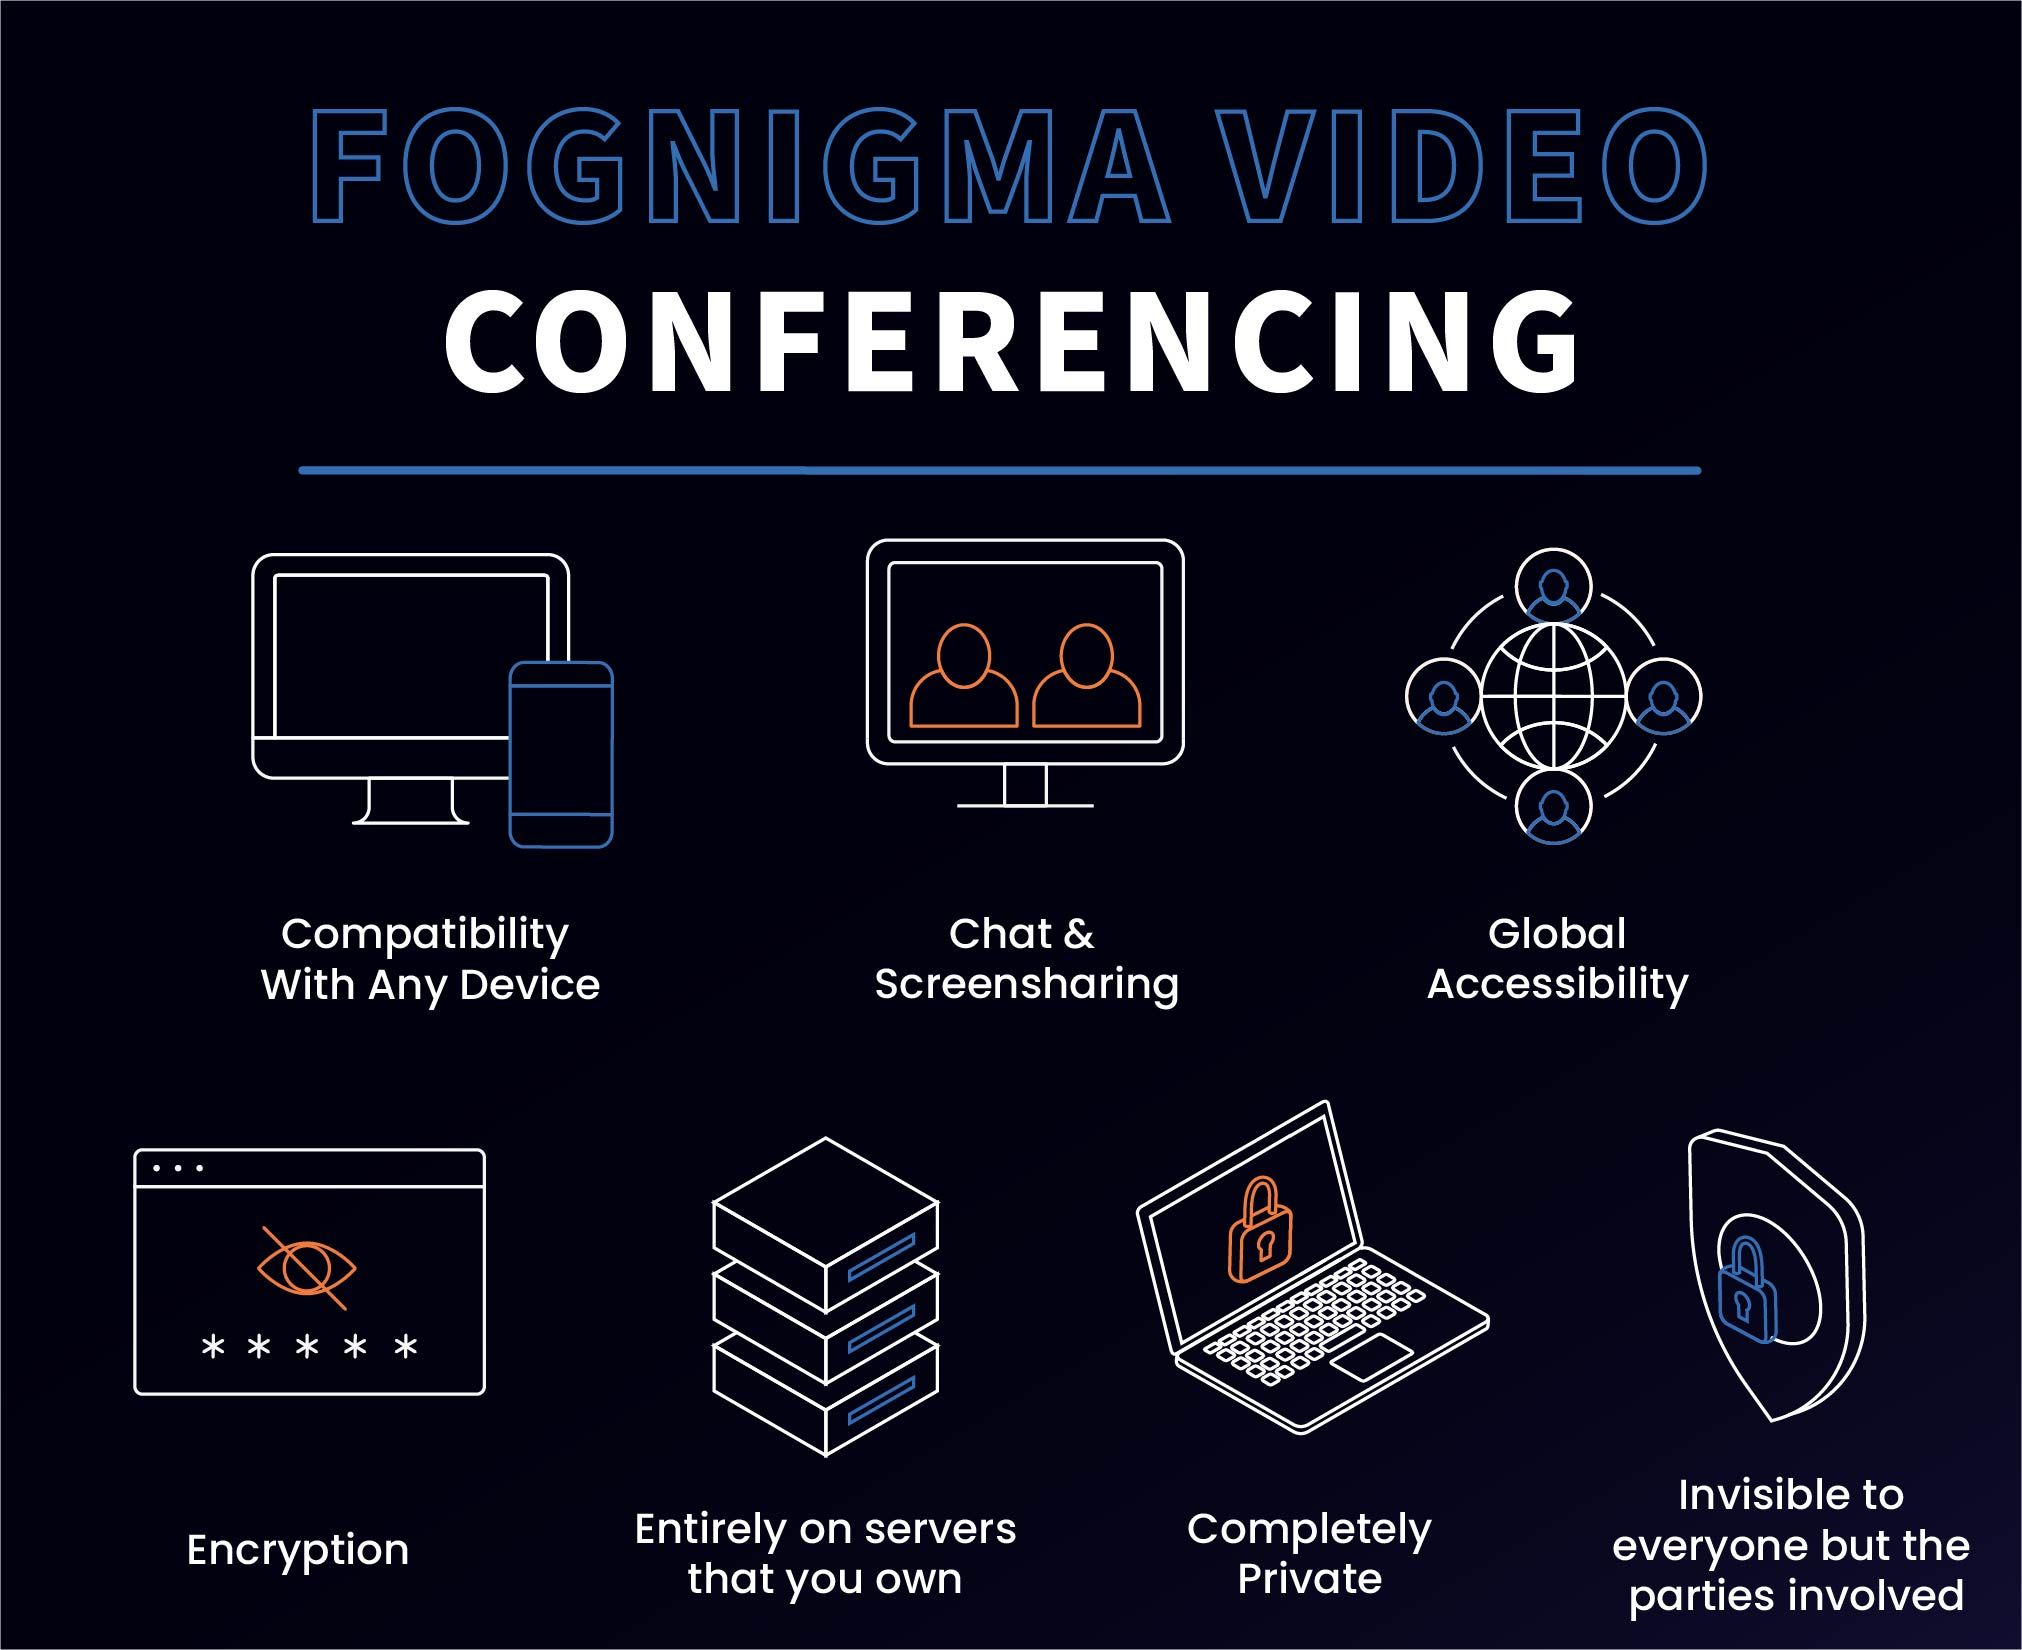 Fognigma Video Conference